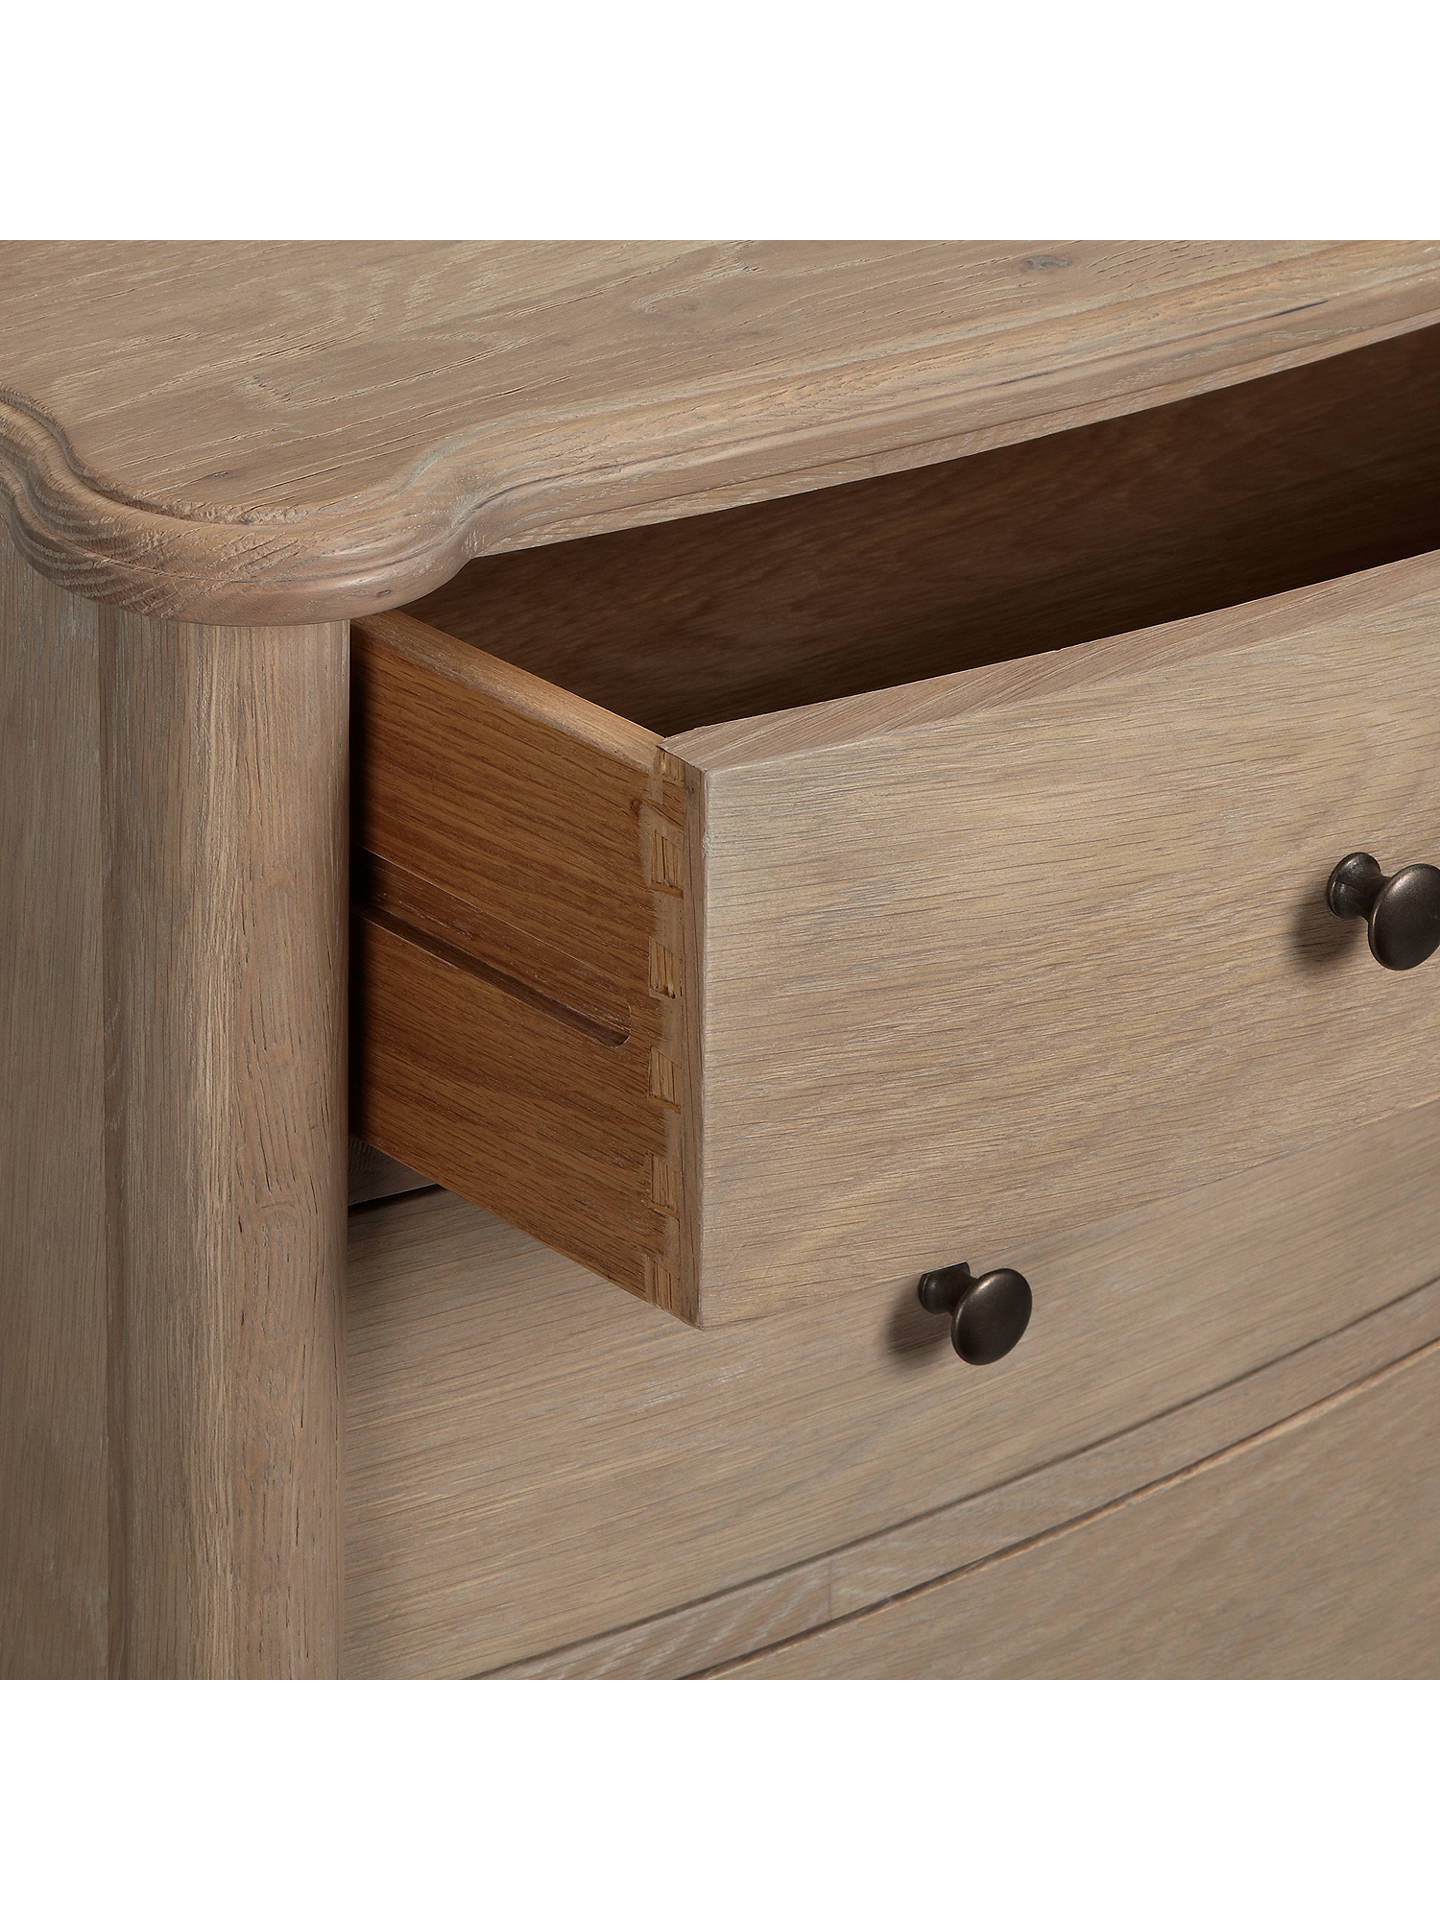 BuyJohn Lewis & Partners Etienne 5 Drawer Chest, Oak Online at johnlewis.com